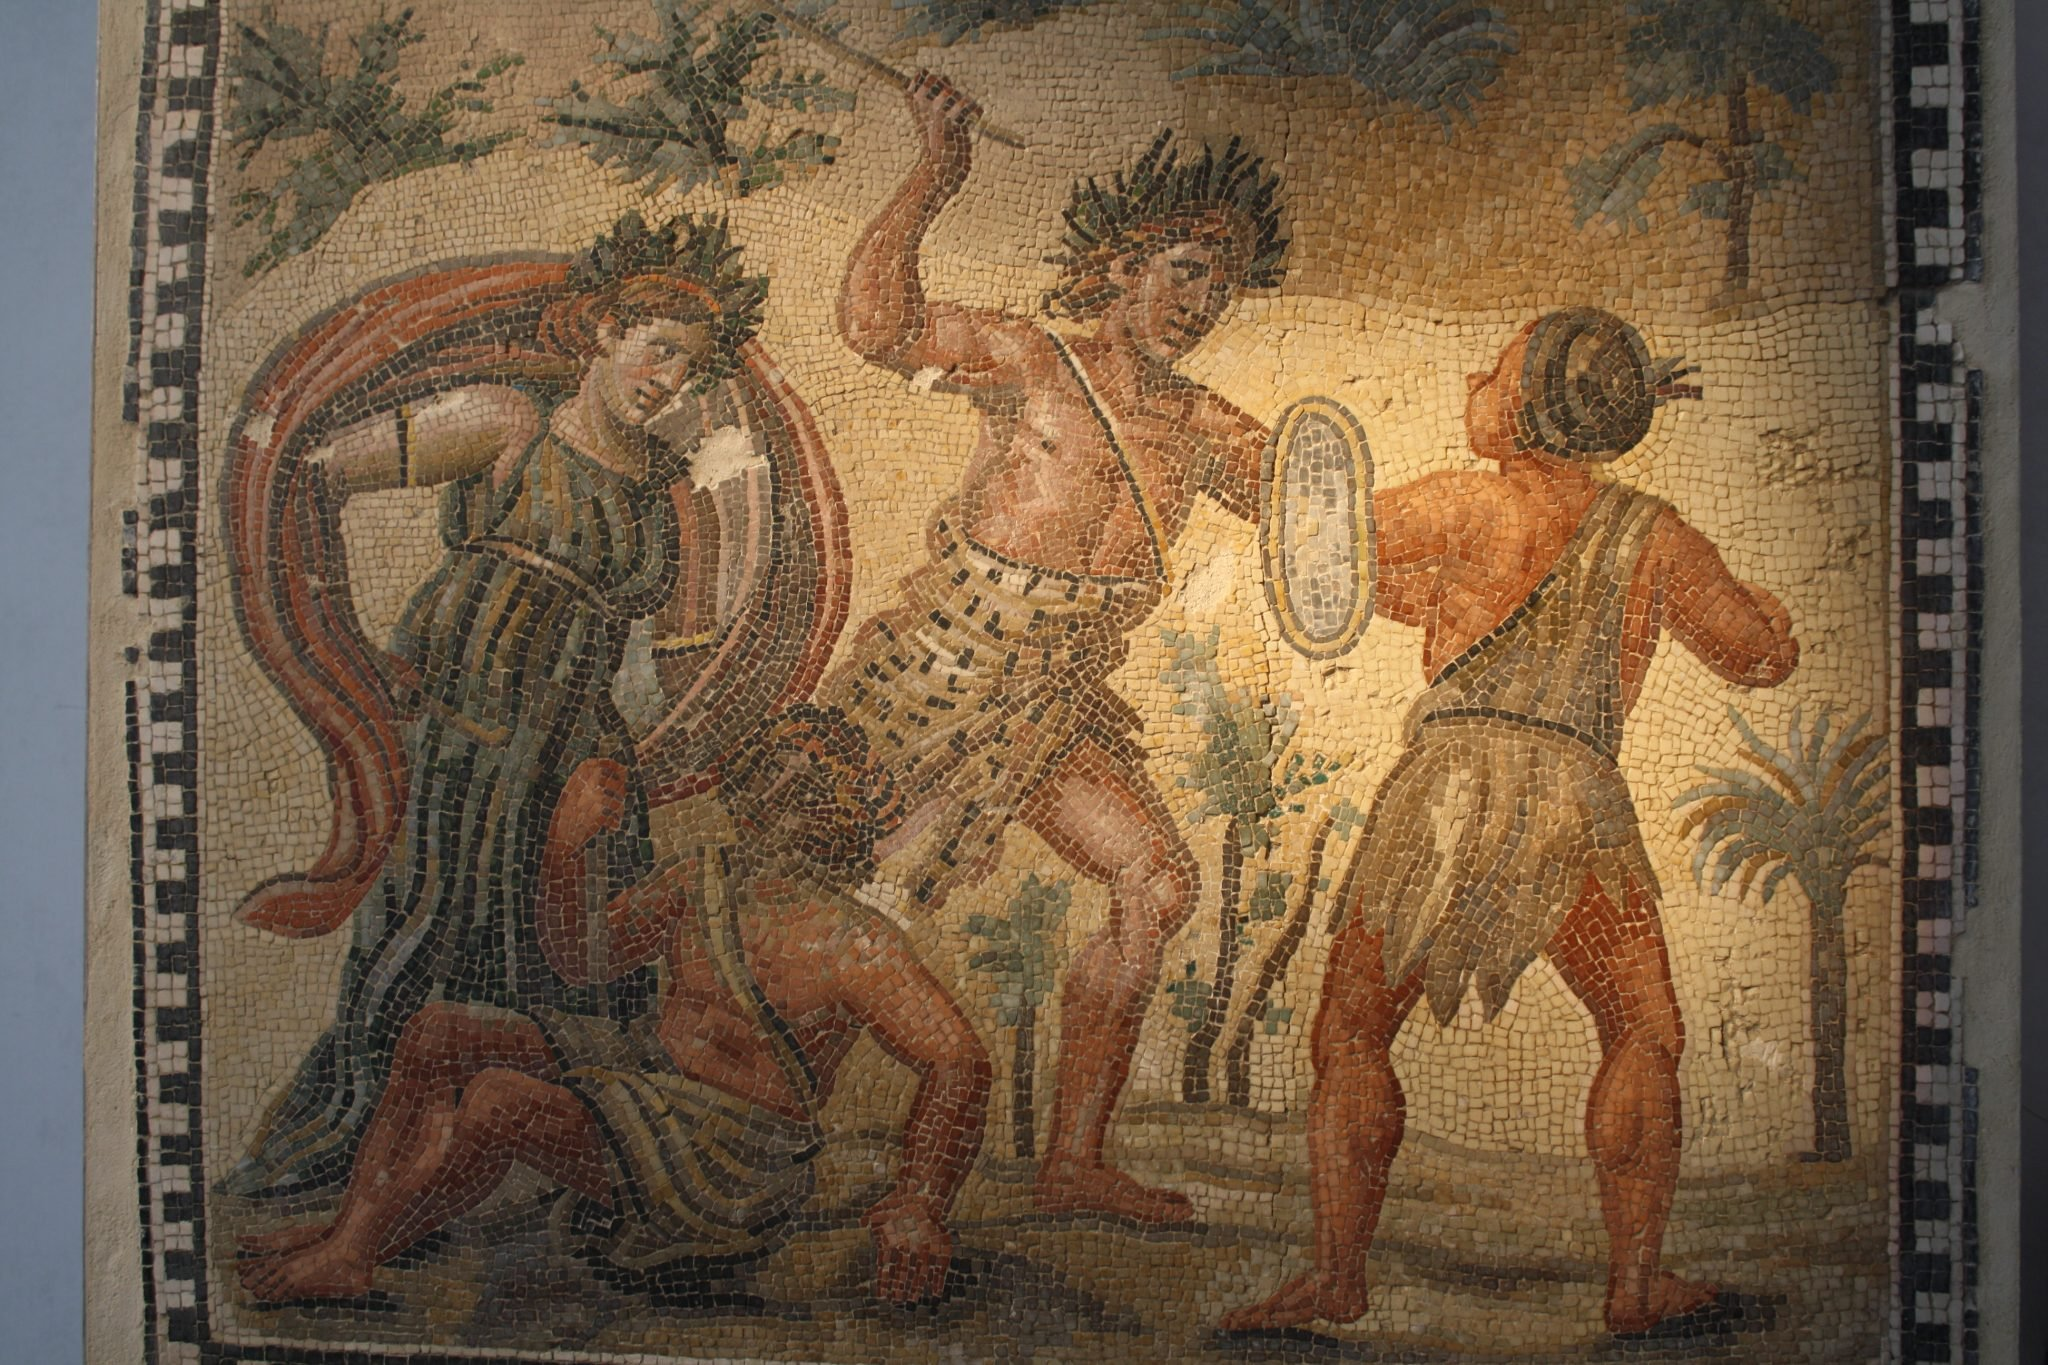 8 More Amazing Ancient Roman Mosaics